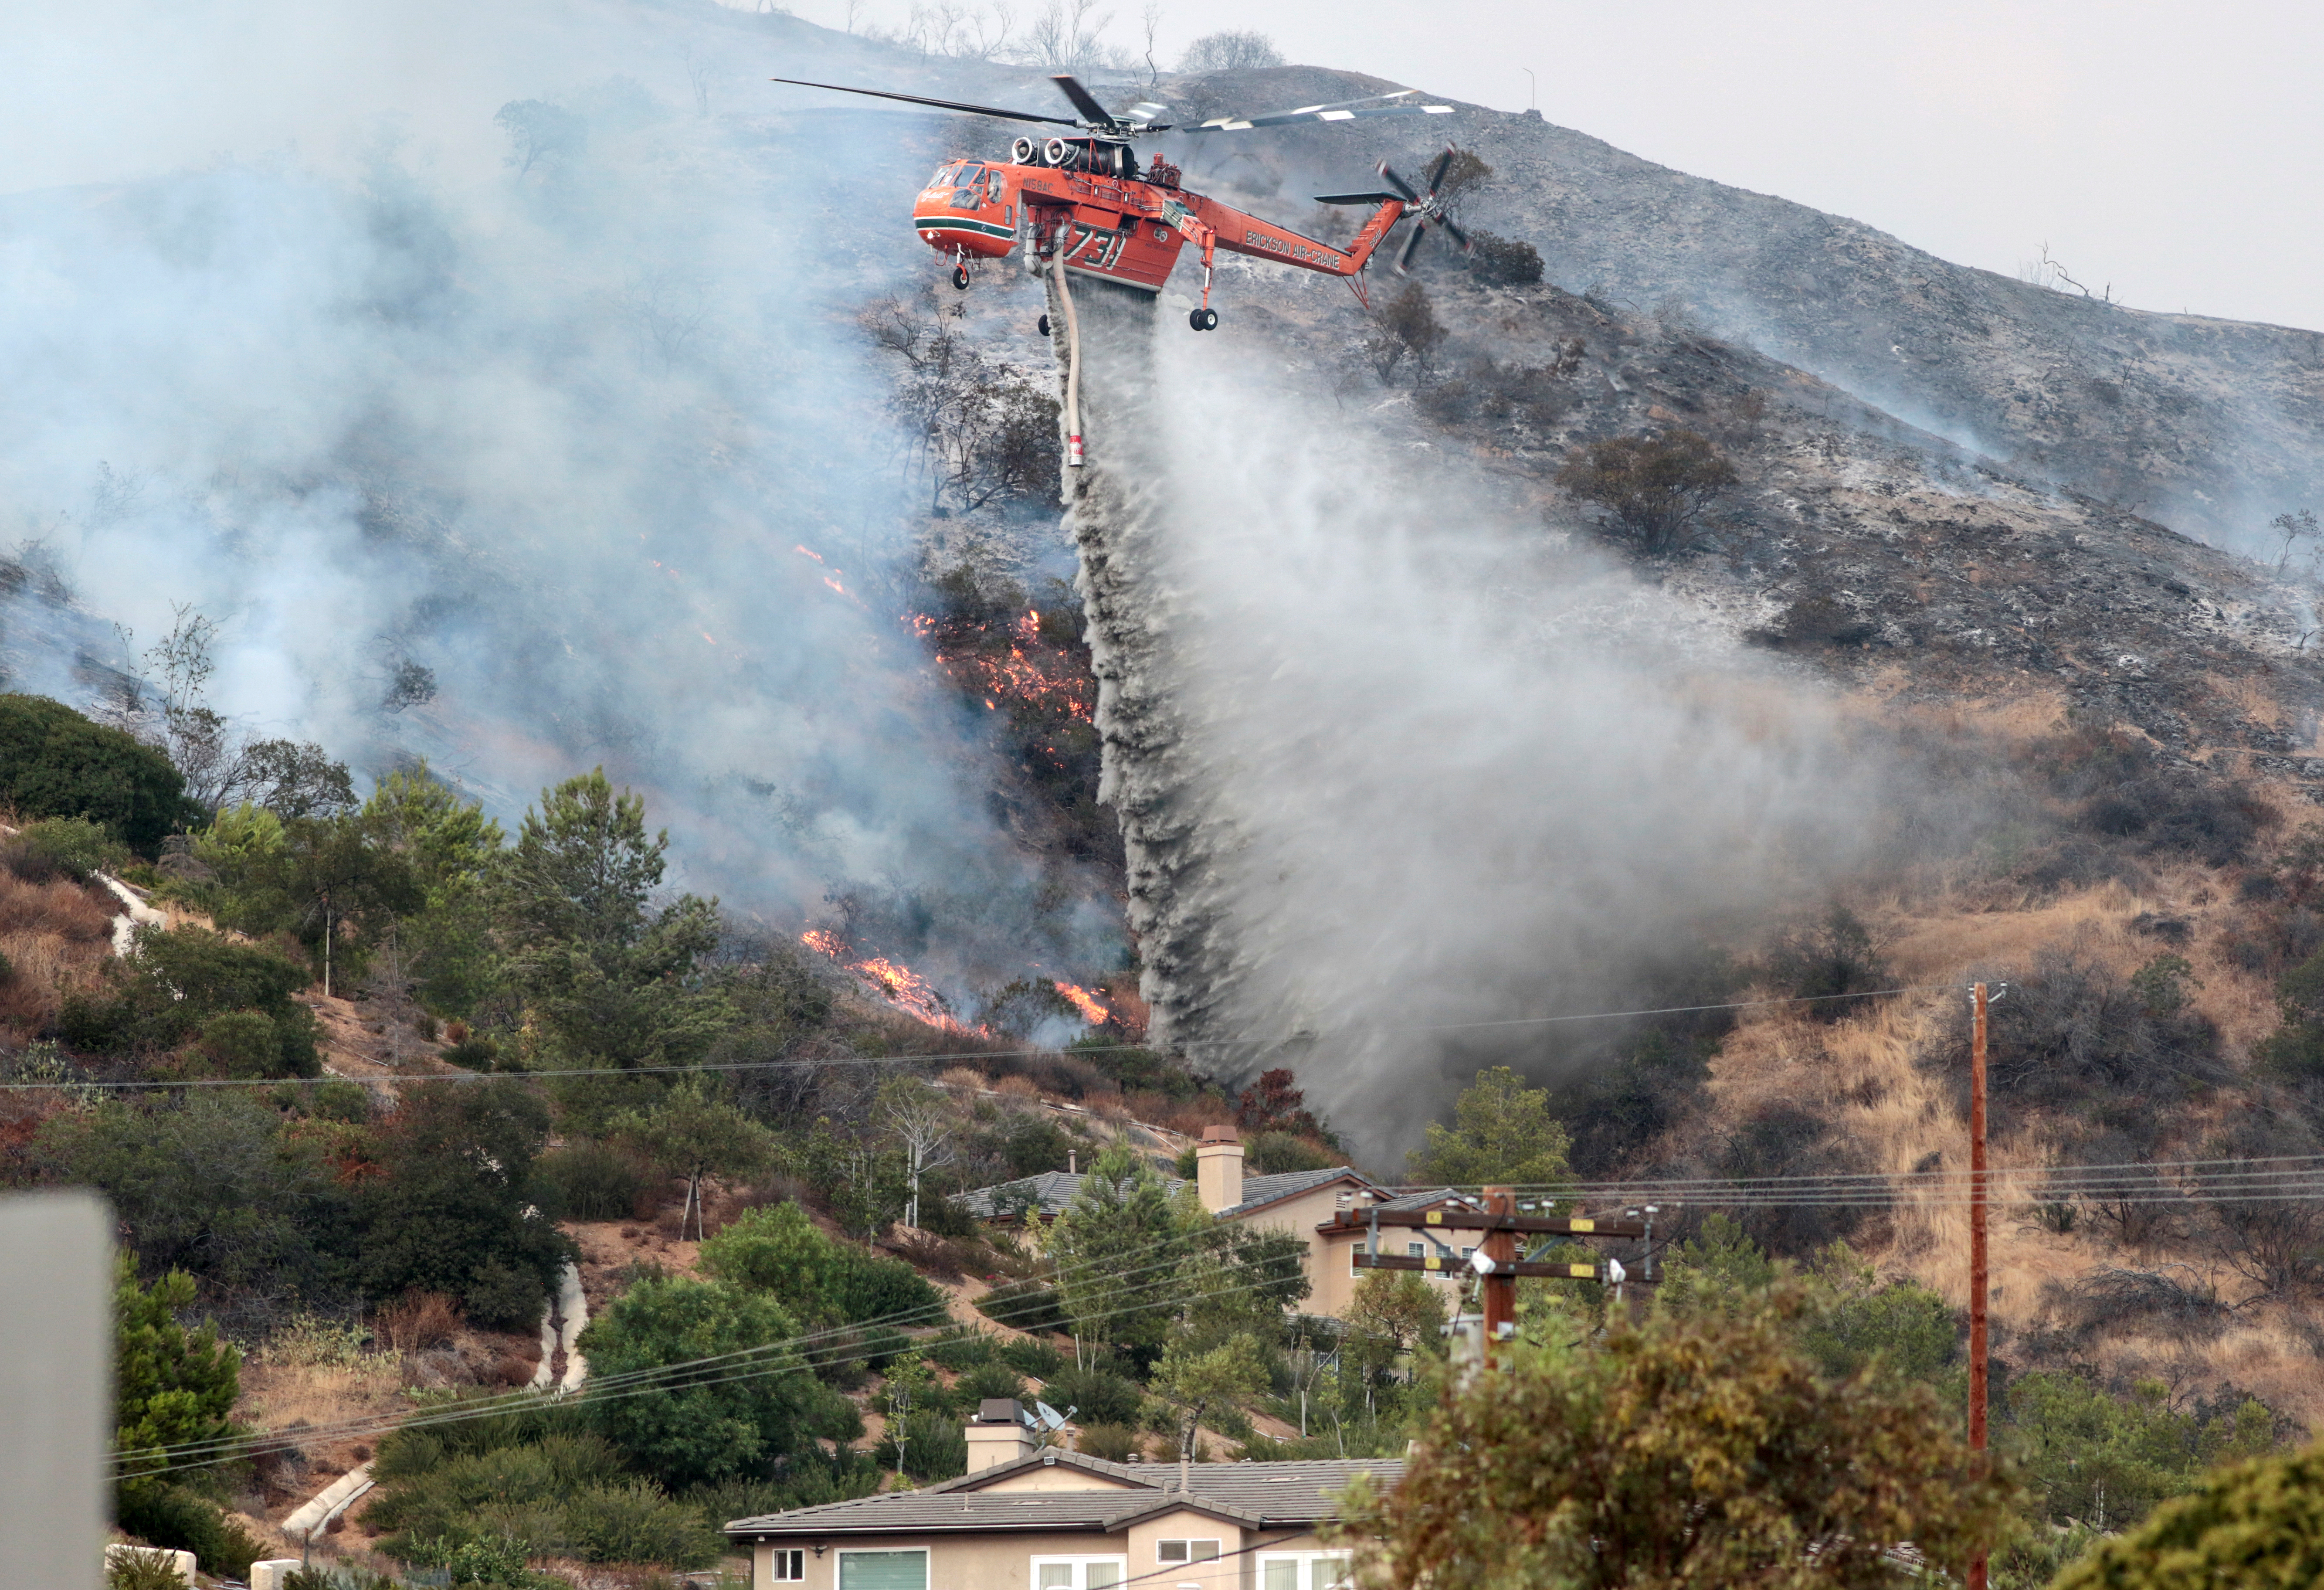 Water is dropped above homes in Sun Valley during the La Tuna Canyon fire over Burbank. (REUTERS/ Kyle Grillot)